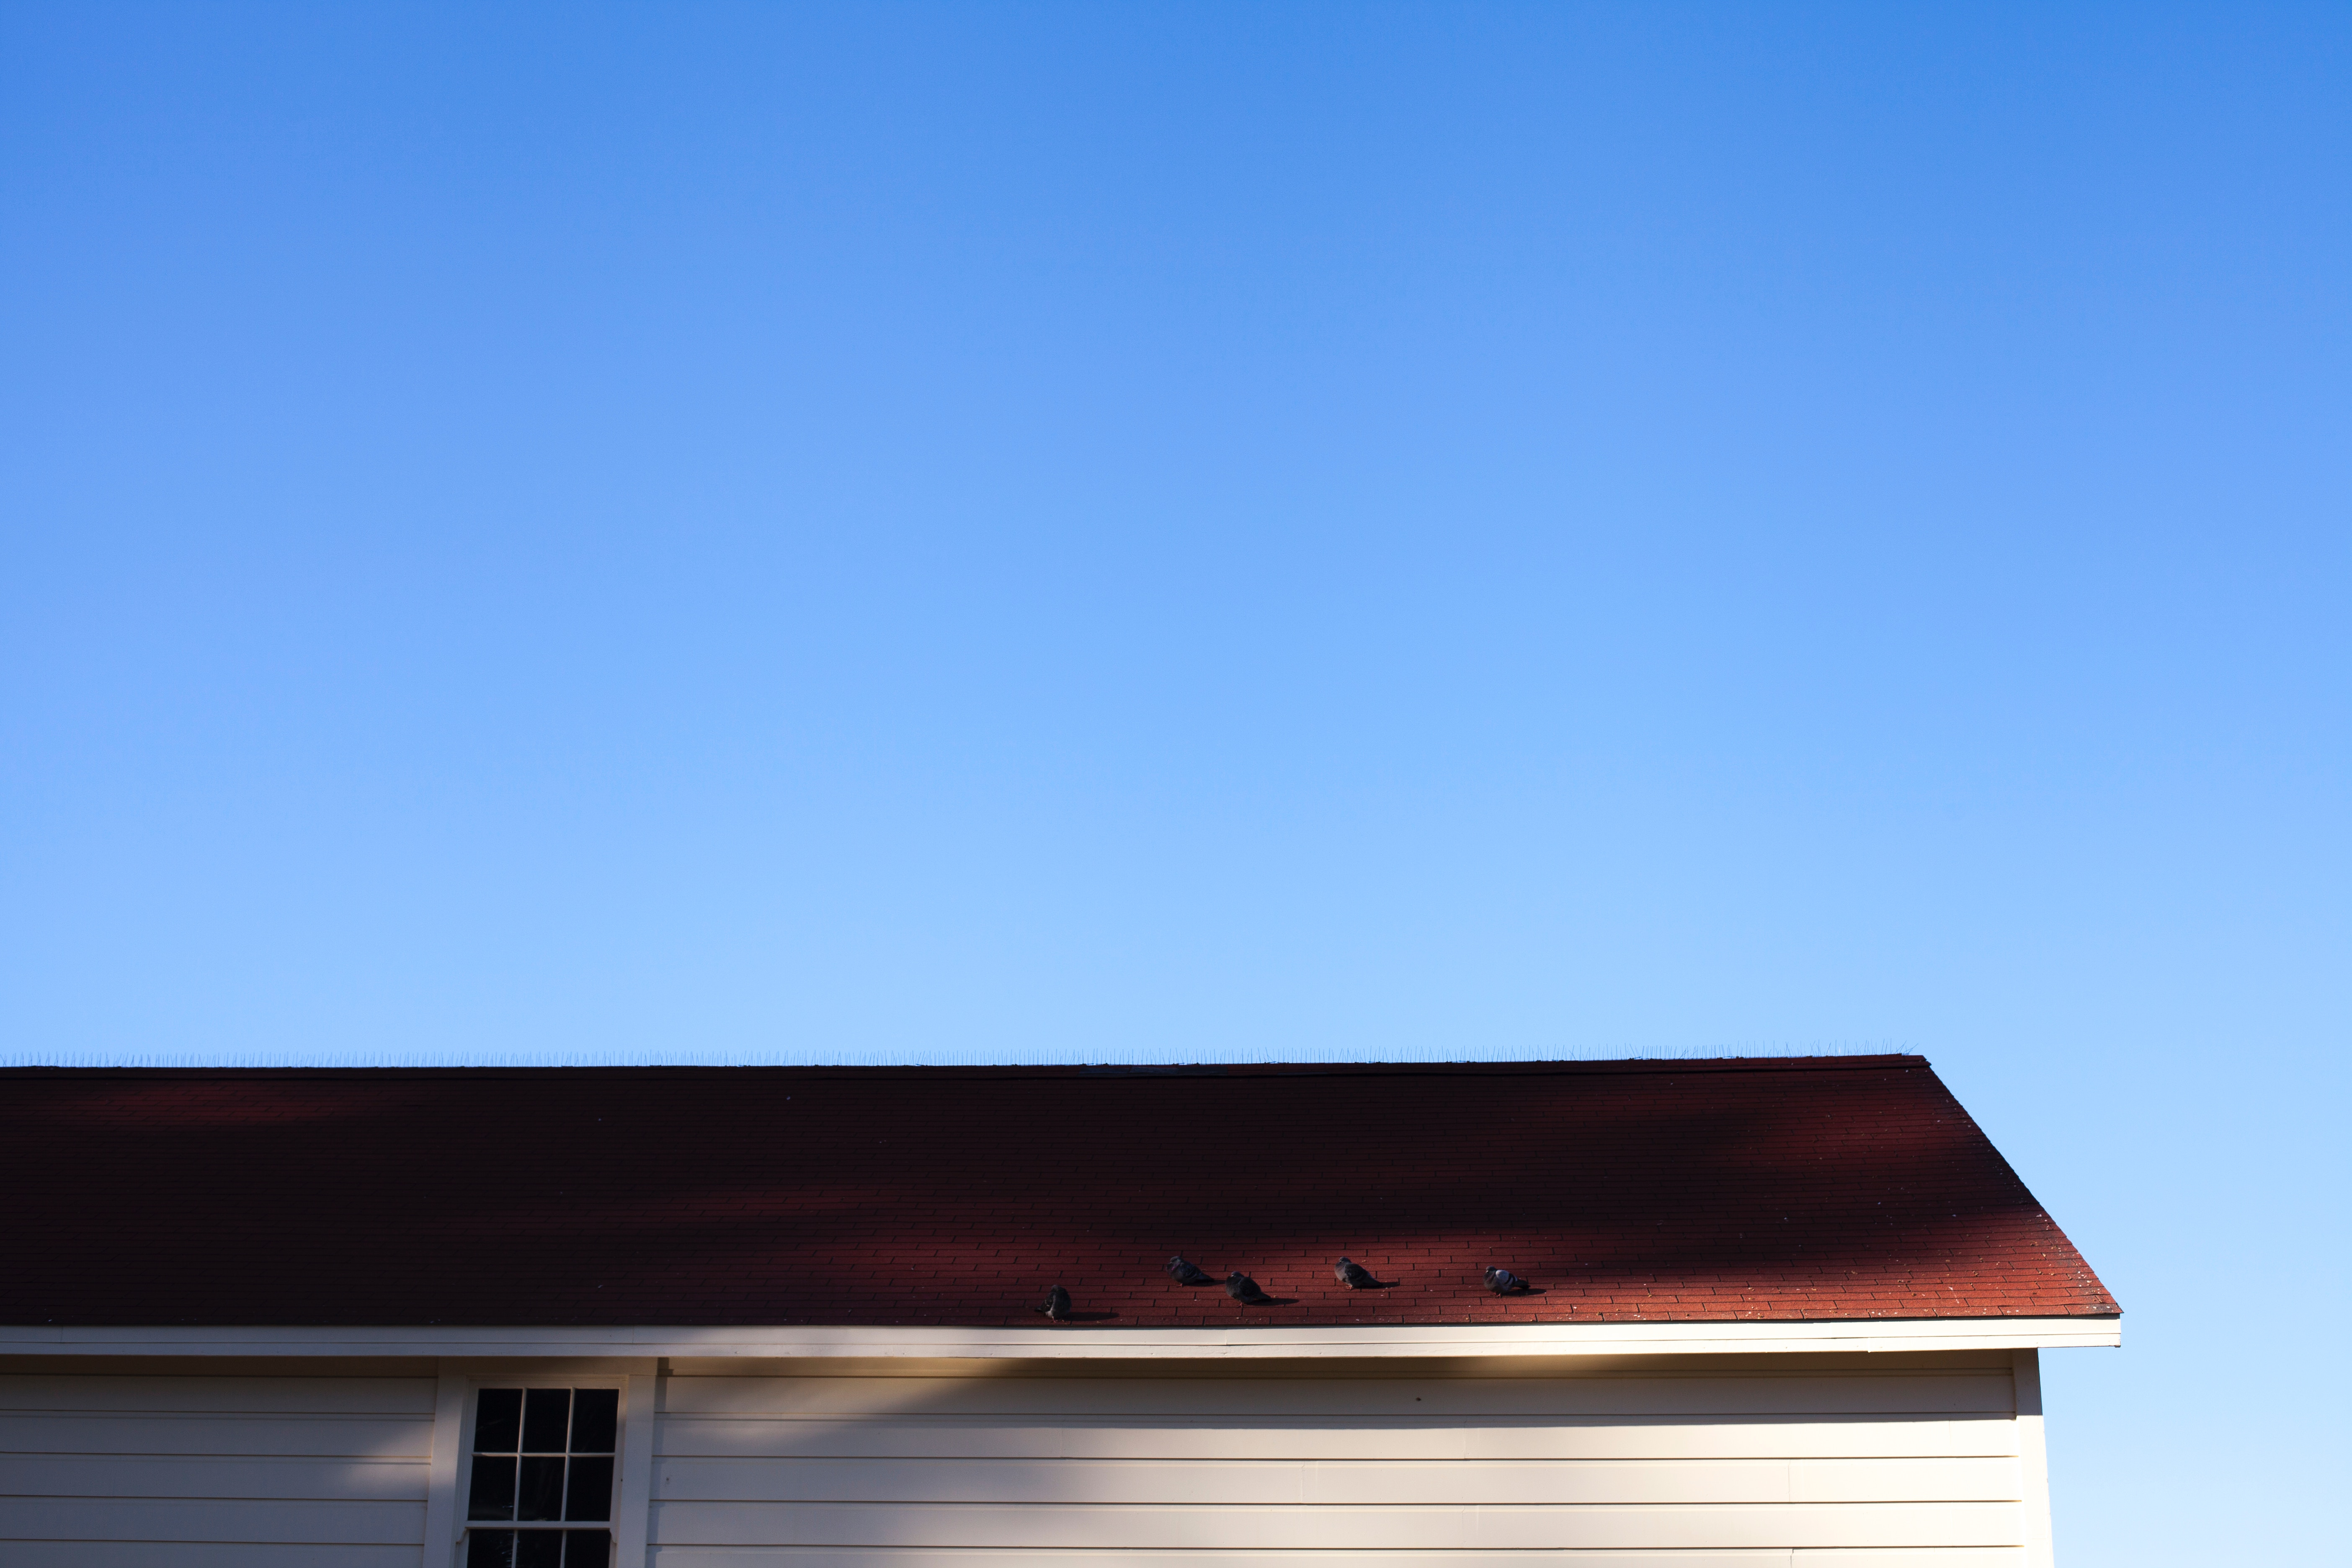 4 Signs Your Roof is in Bad Shape